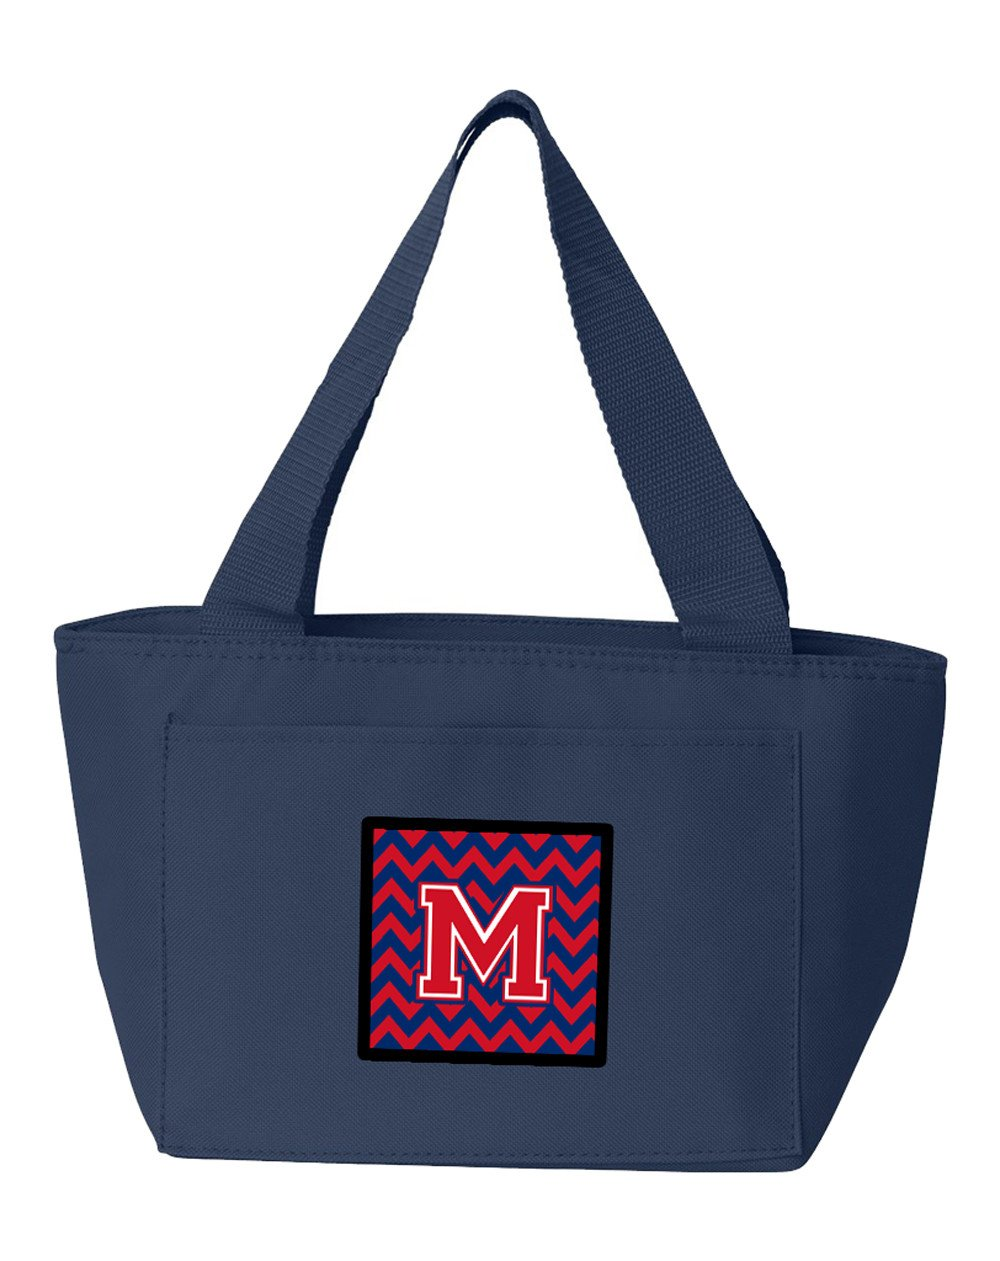 Letter M Chevron Yale Blue and Crimson Lunch Bag CJ1054-MNA-8808 by Caroline's Treasures